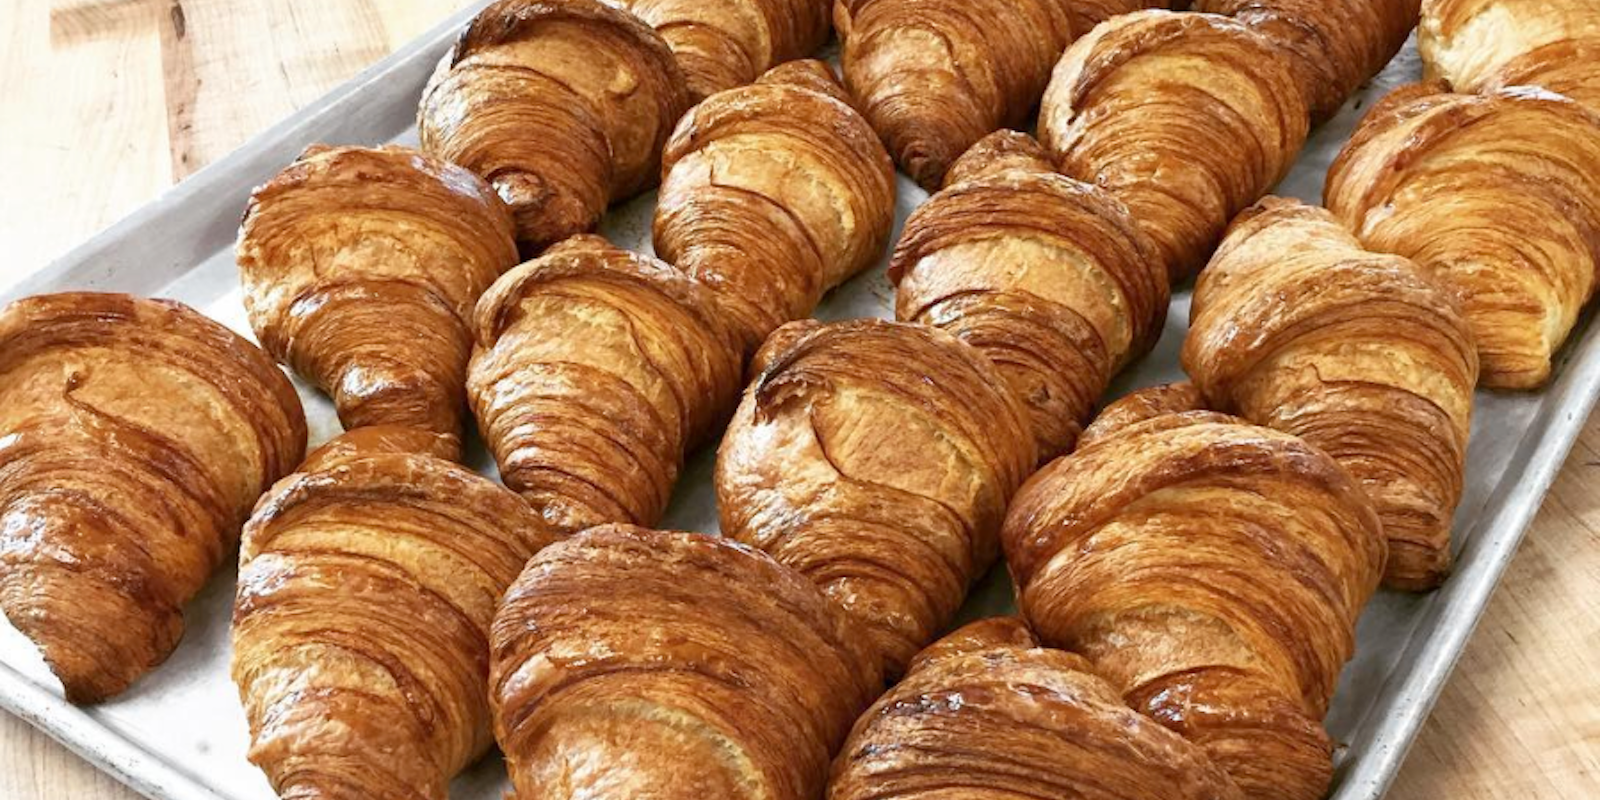 Croissants at JJ Bean Coffee